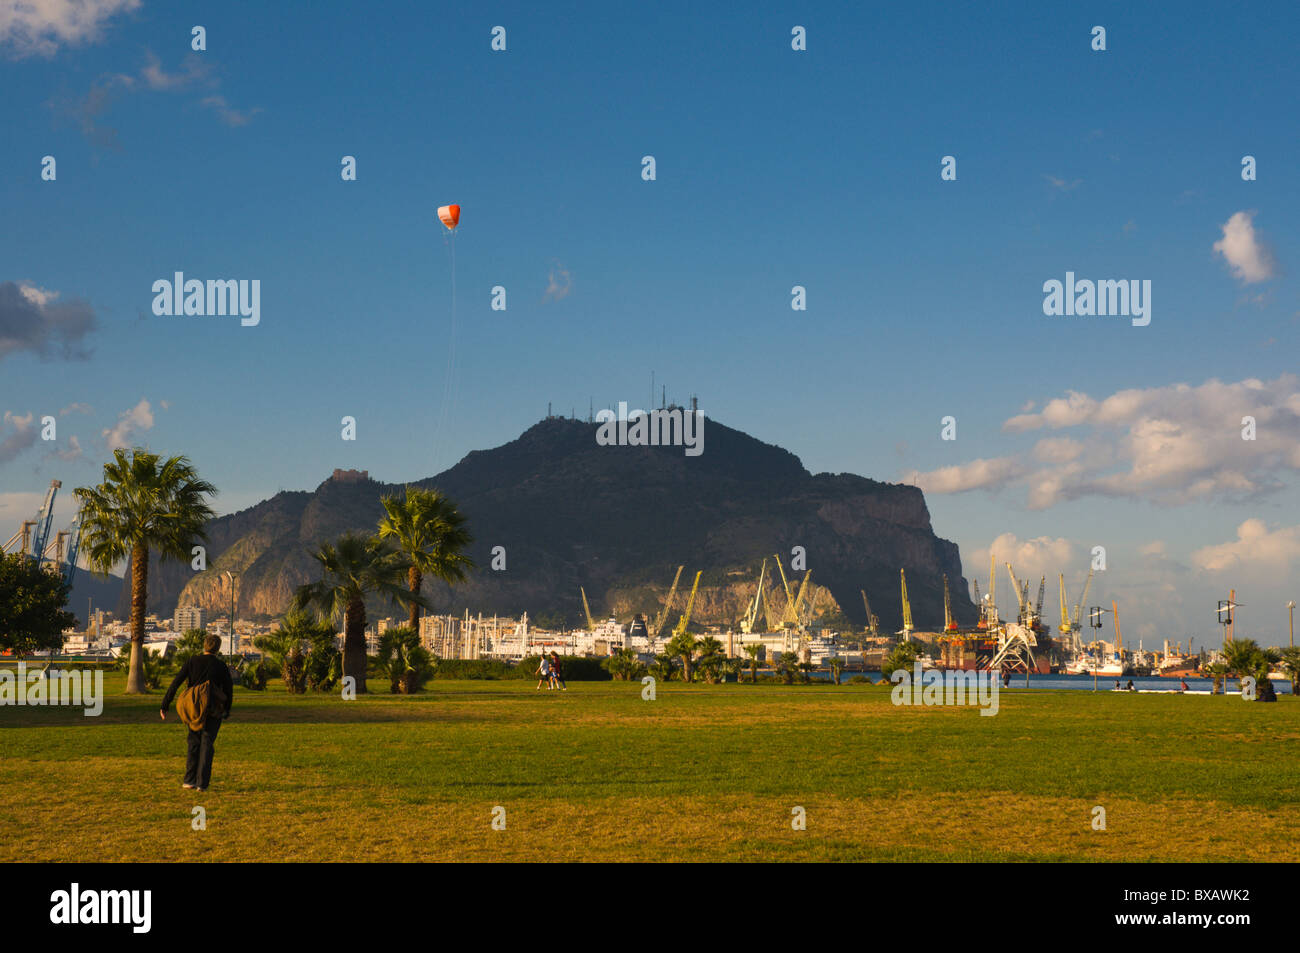 Terrazza a mare park by the sea Palermo Sicily Italy Europe Stock ...